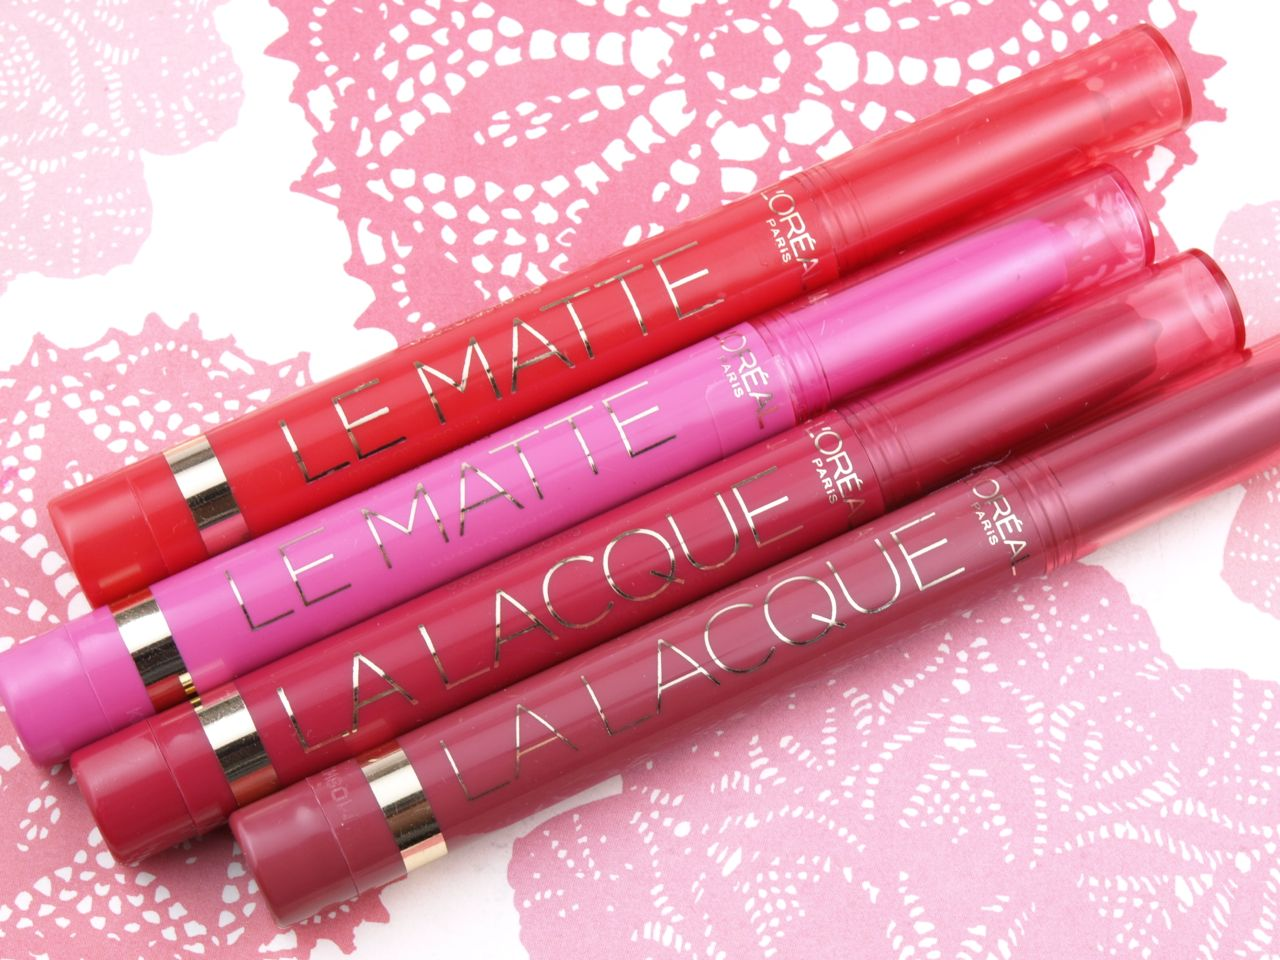 L'Oreal Le Matte & La Lacque Full Coverage Lip Colors: Review and Swatches